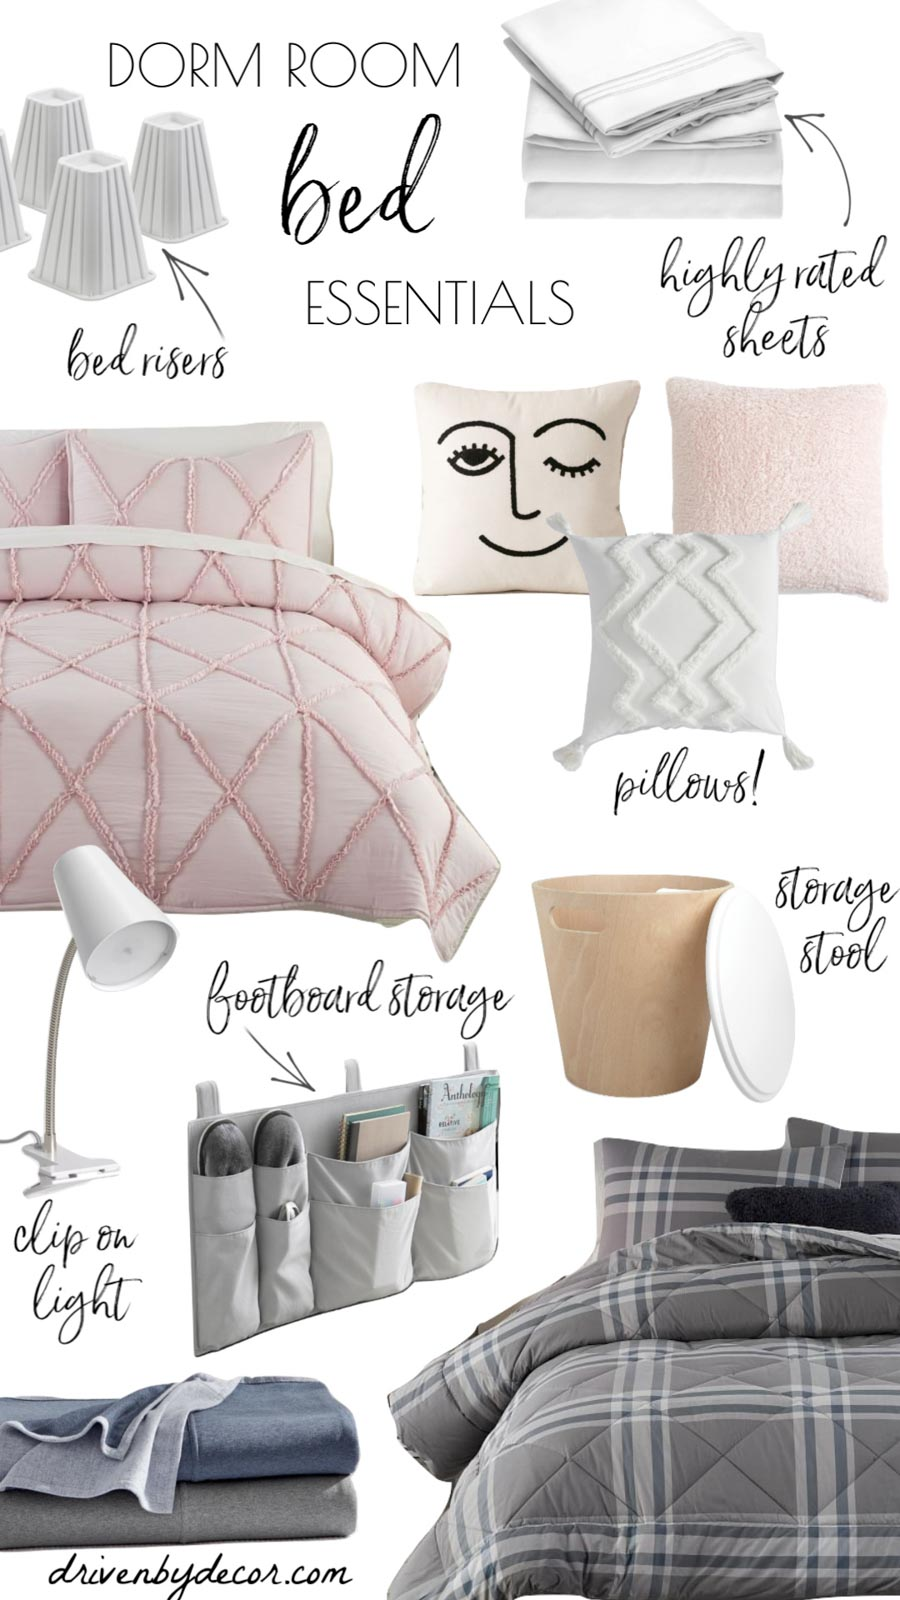 The dorm room essentials you need for your bed - a complete list!